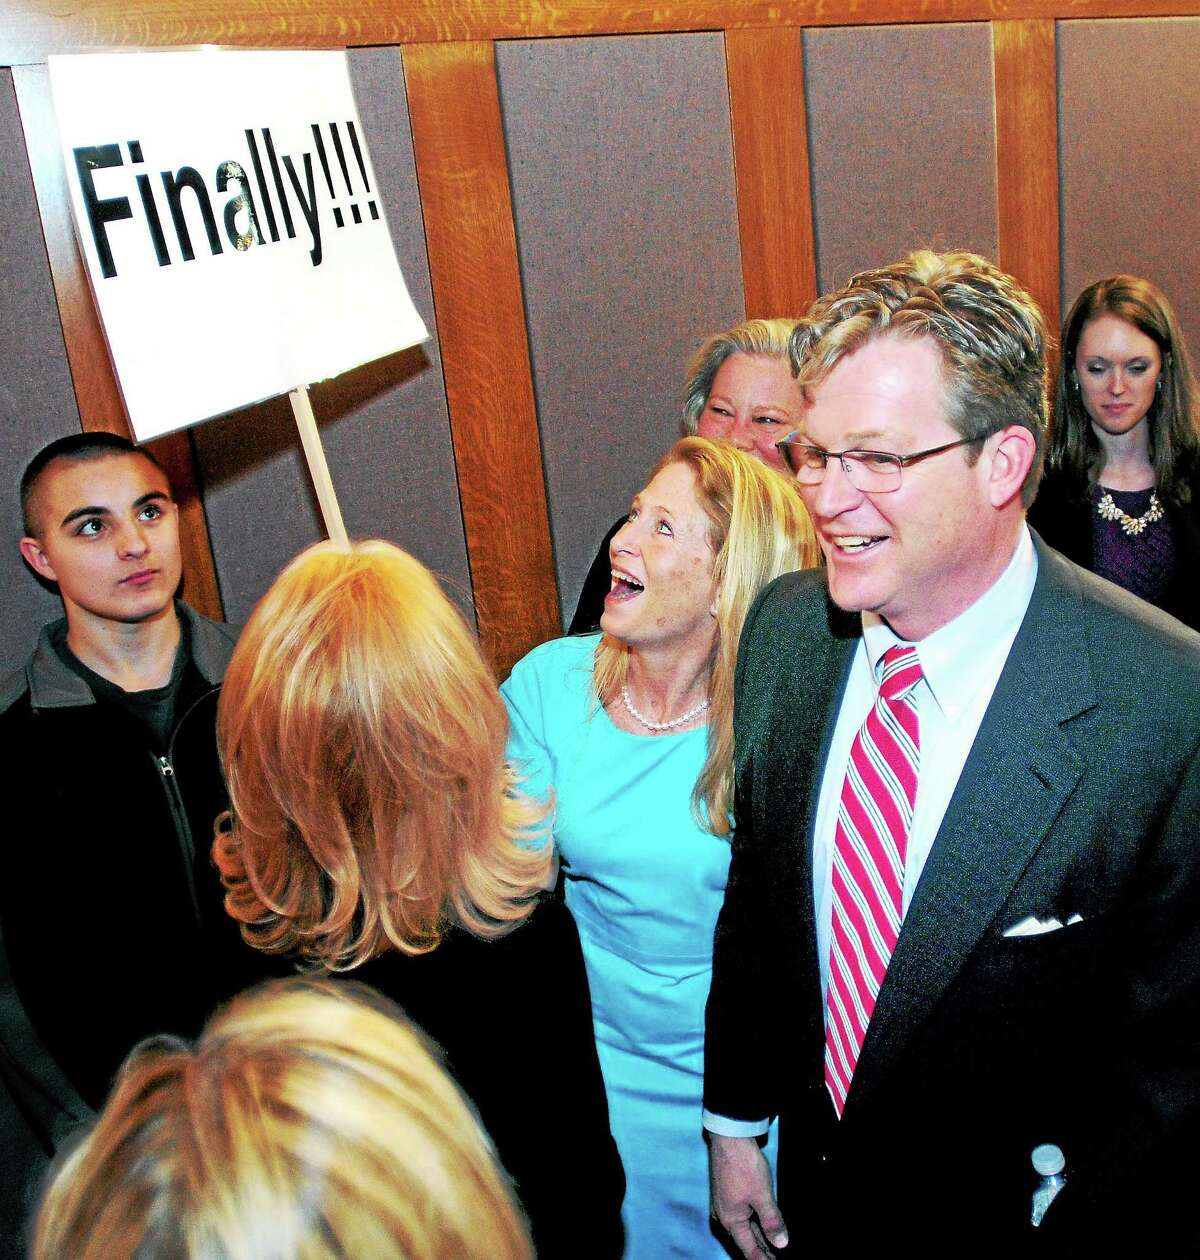 """Ted Kennedy Jr., right, and his wife, Kiki, share a laugh with their neighbor who made a """"Finally!!!"""" sign for his announcement to run for a state senate seat at the Blackstone Memorial Library in Branford Tuesday."""